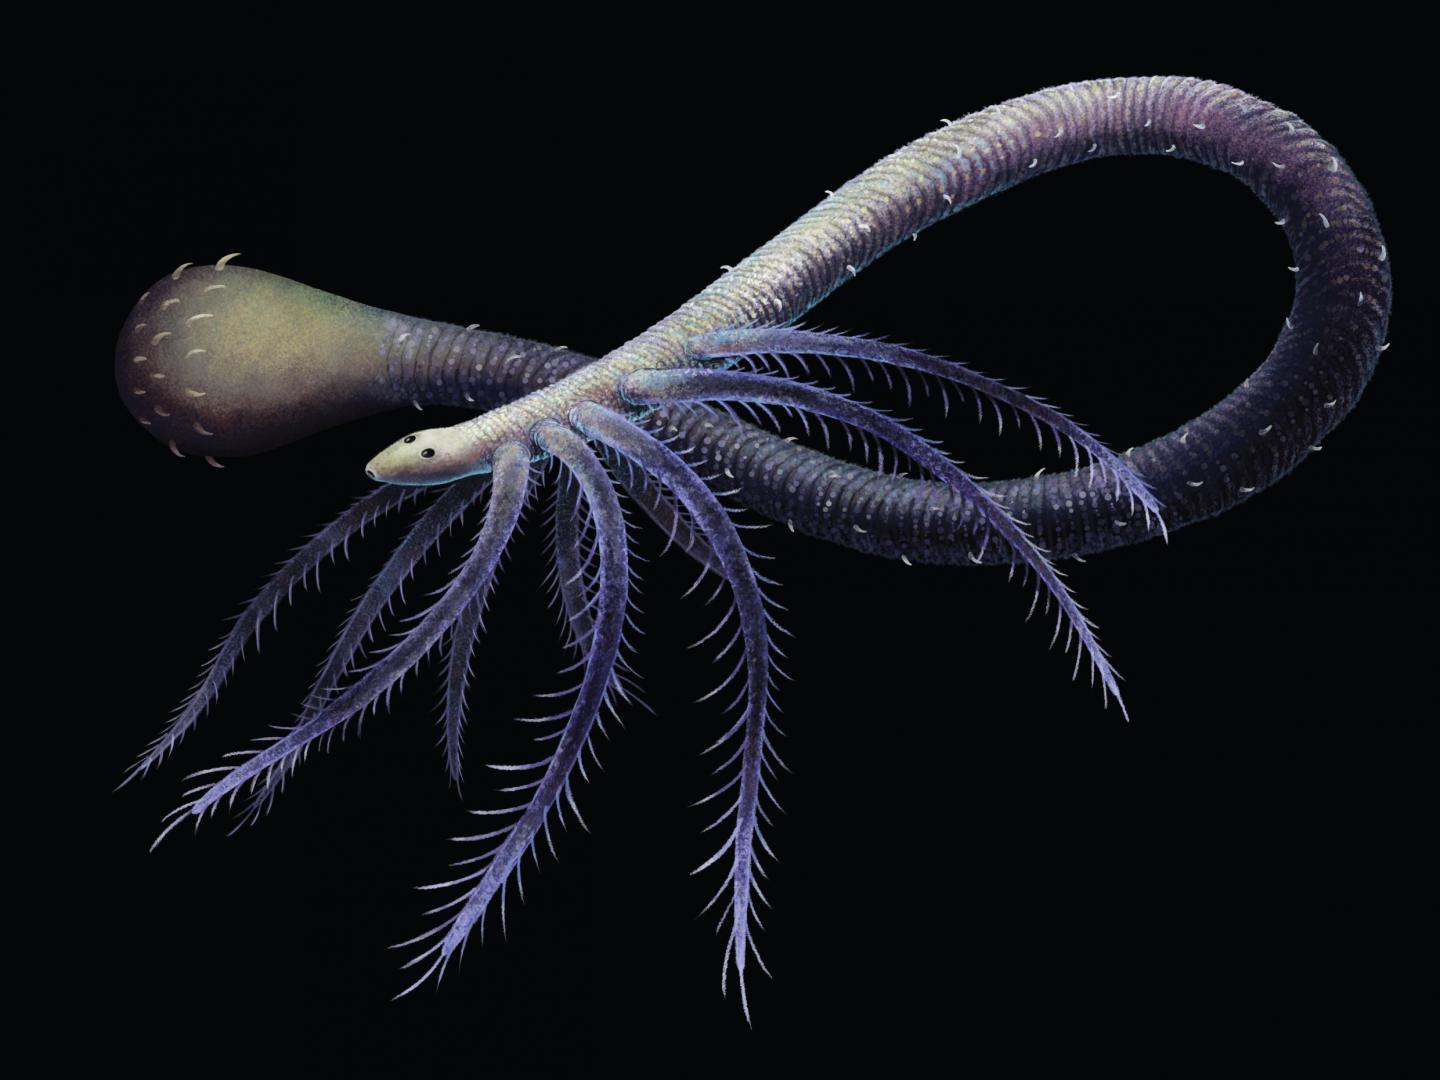 Bizarre Worm-like Creature Lost Its Legs 518 Million Years Ago Because They Were No Longer Useful - Newsweek